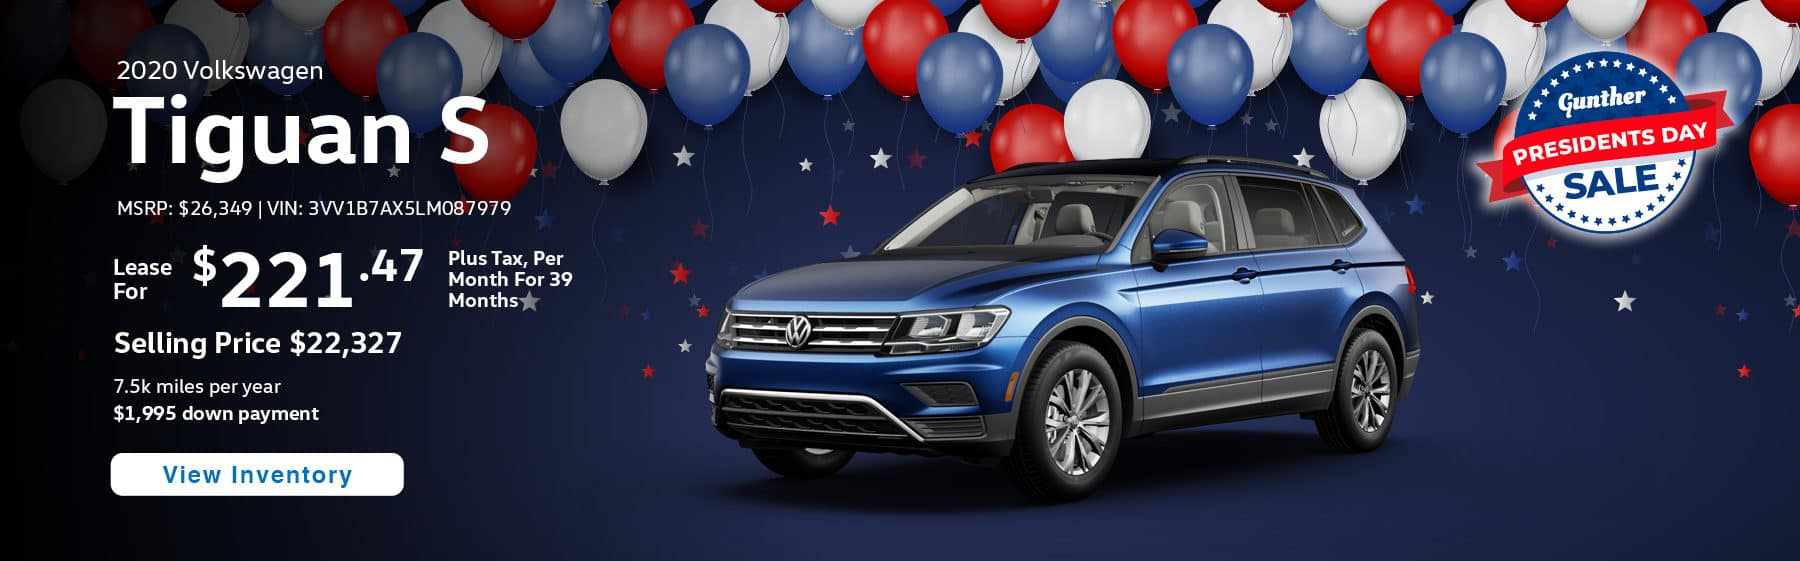 Lease the 2020 Tiguan S for $221.47 per month, plus tax for 39 months.